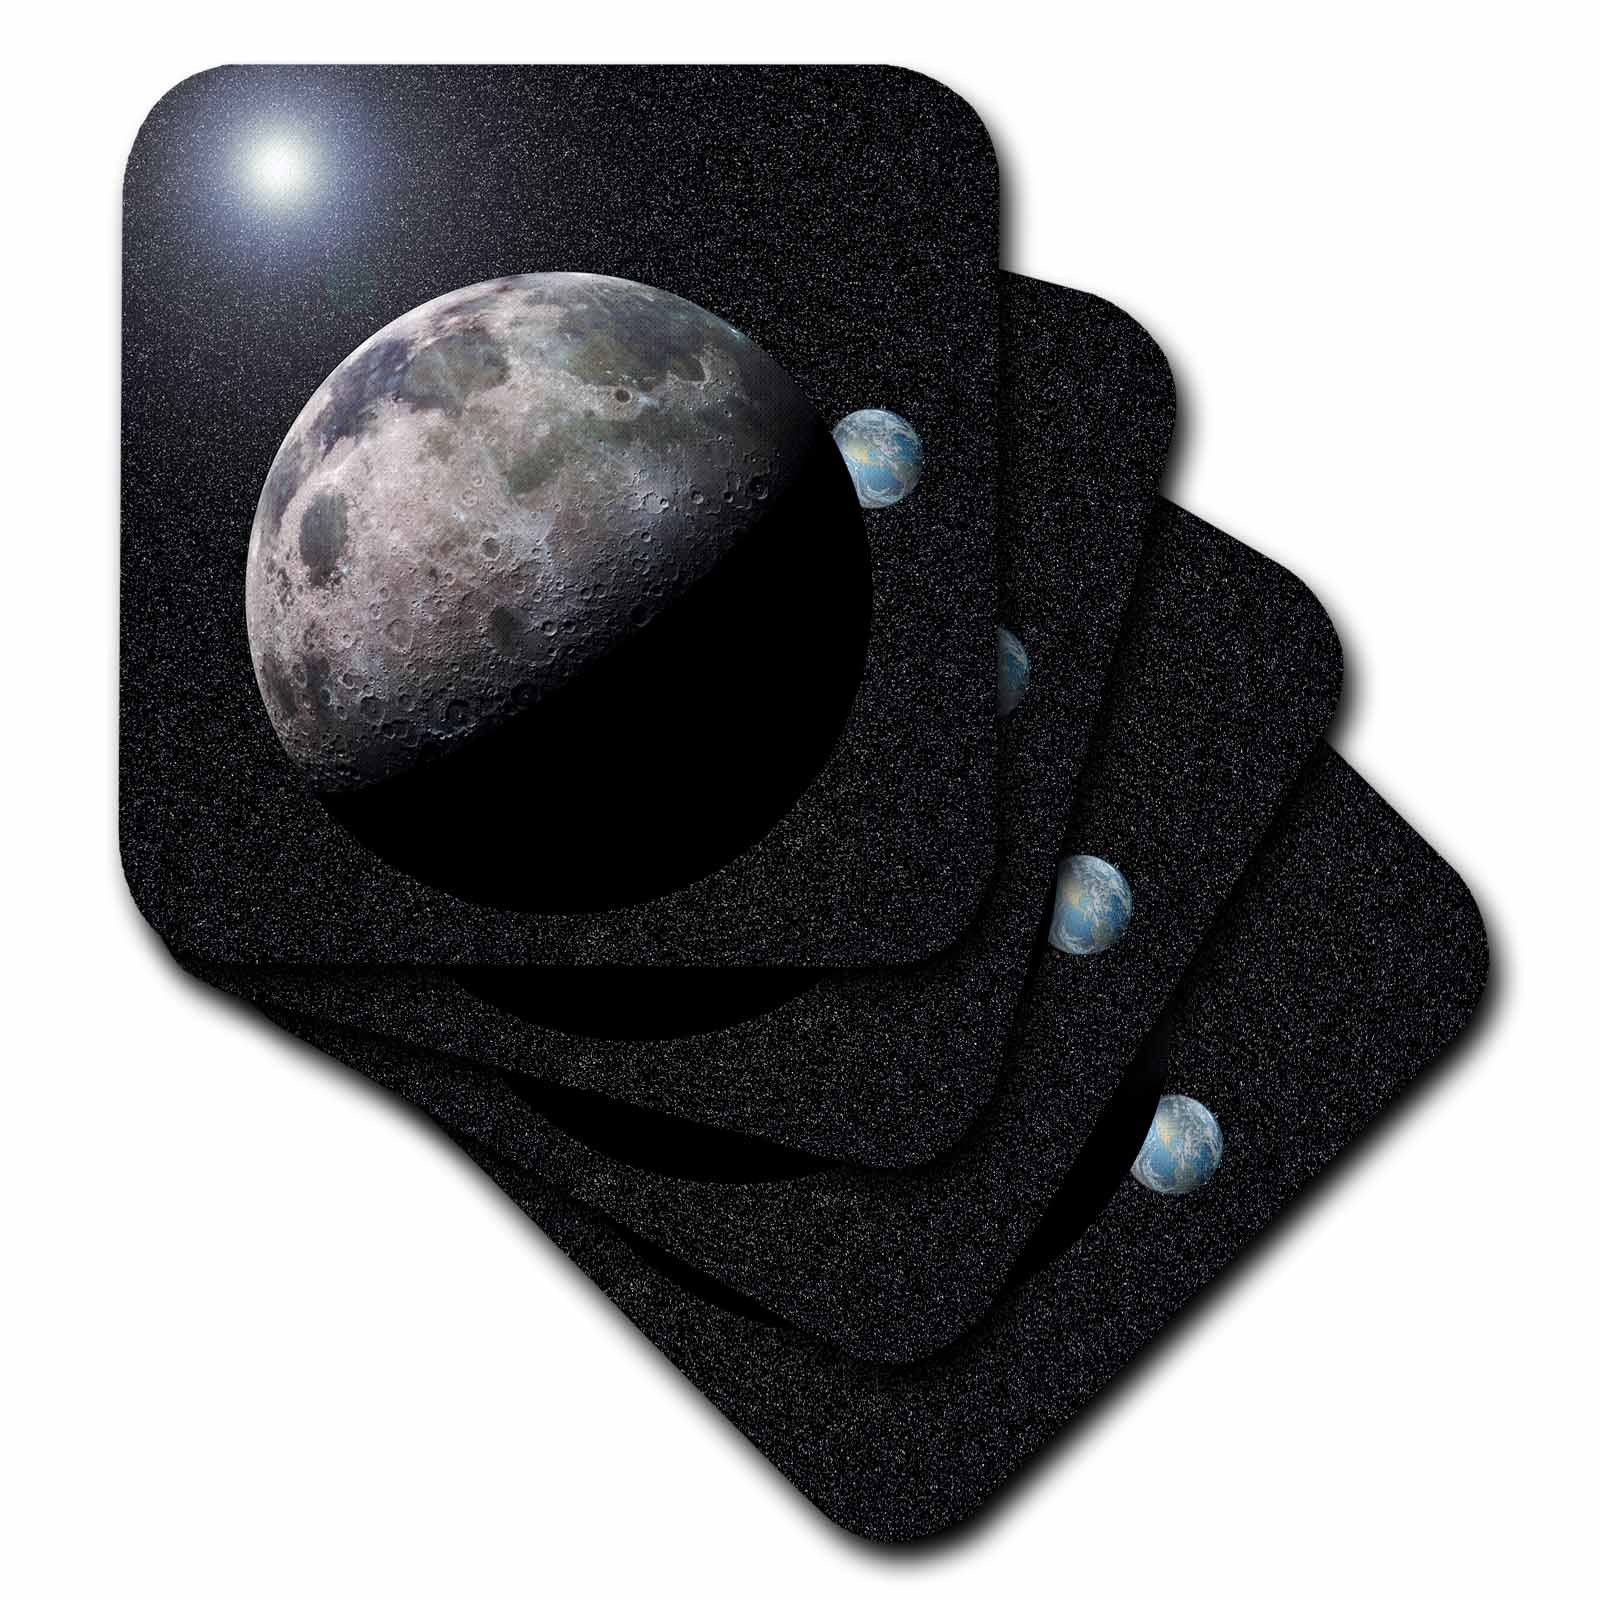 3dRose cst_19949_3 Moon Dance Solar System Scene of Planet Earth and Moon Dancing in Space Orbit Ceramic Tile Coasters, Set of 4